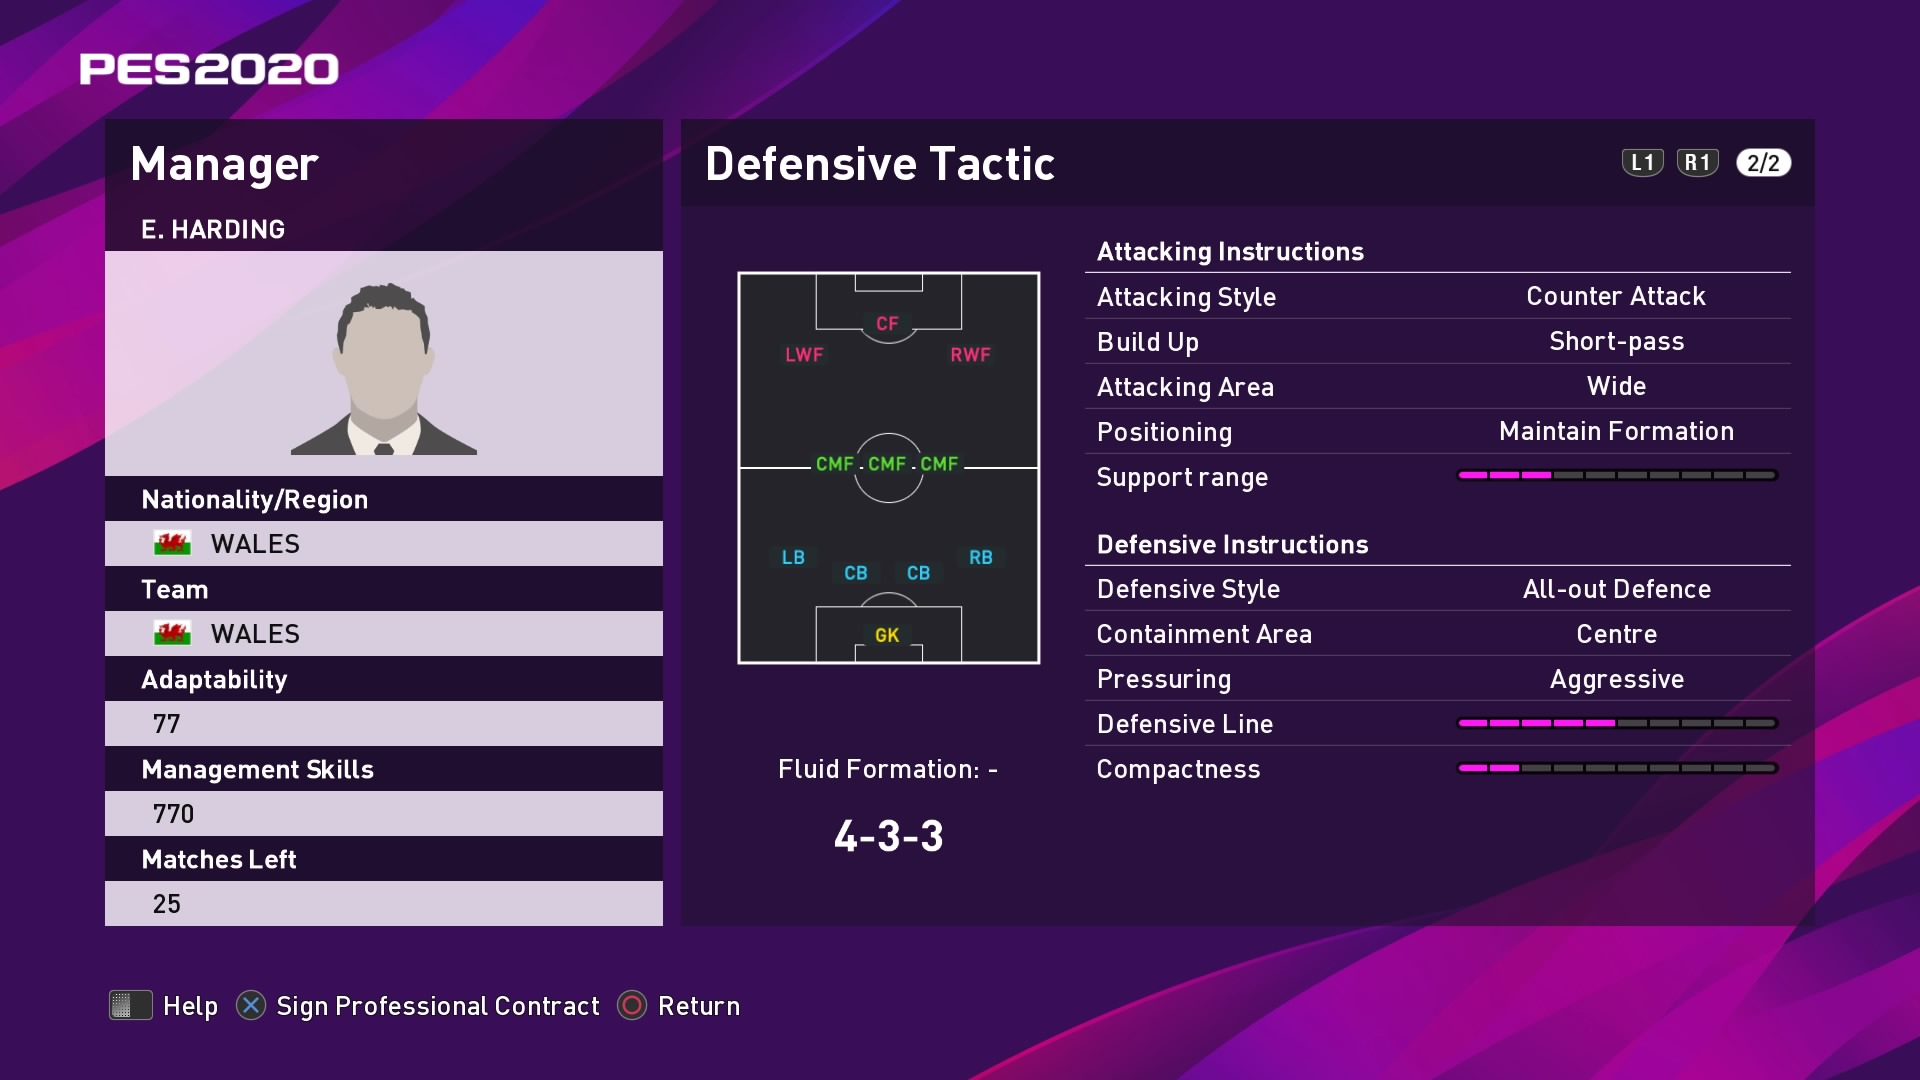 E. Harding (Ryan Giggs) Defensive Tactic in PES 2020 myClub